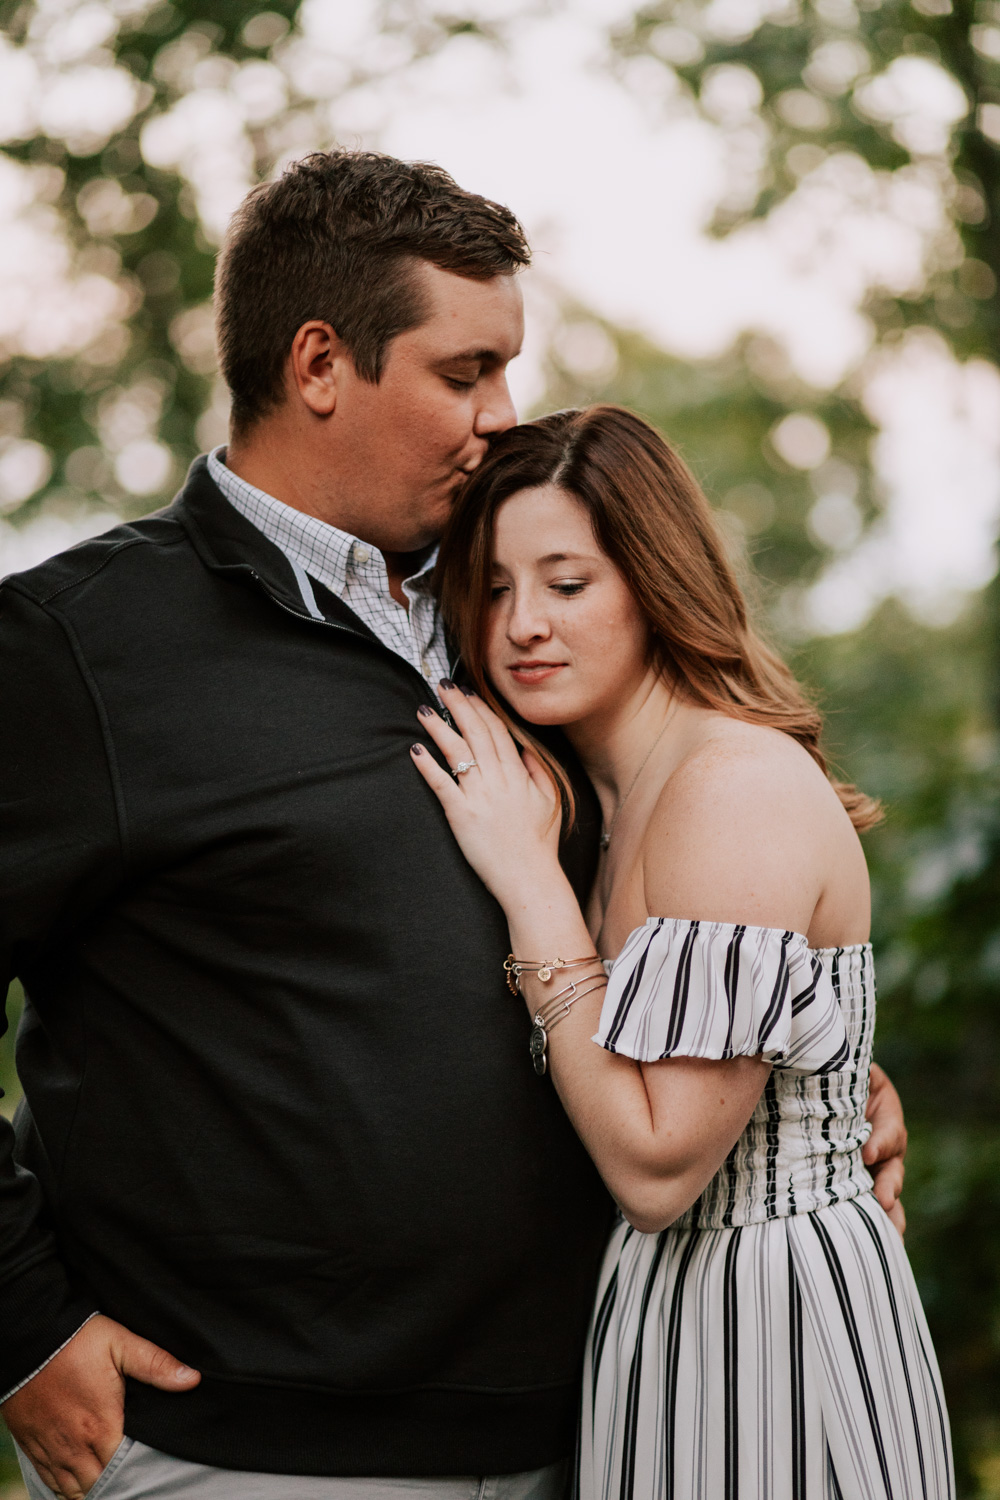 Engagement-Photographer-Lafayette-Indiana-39.jpg